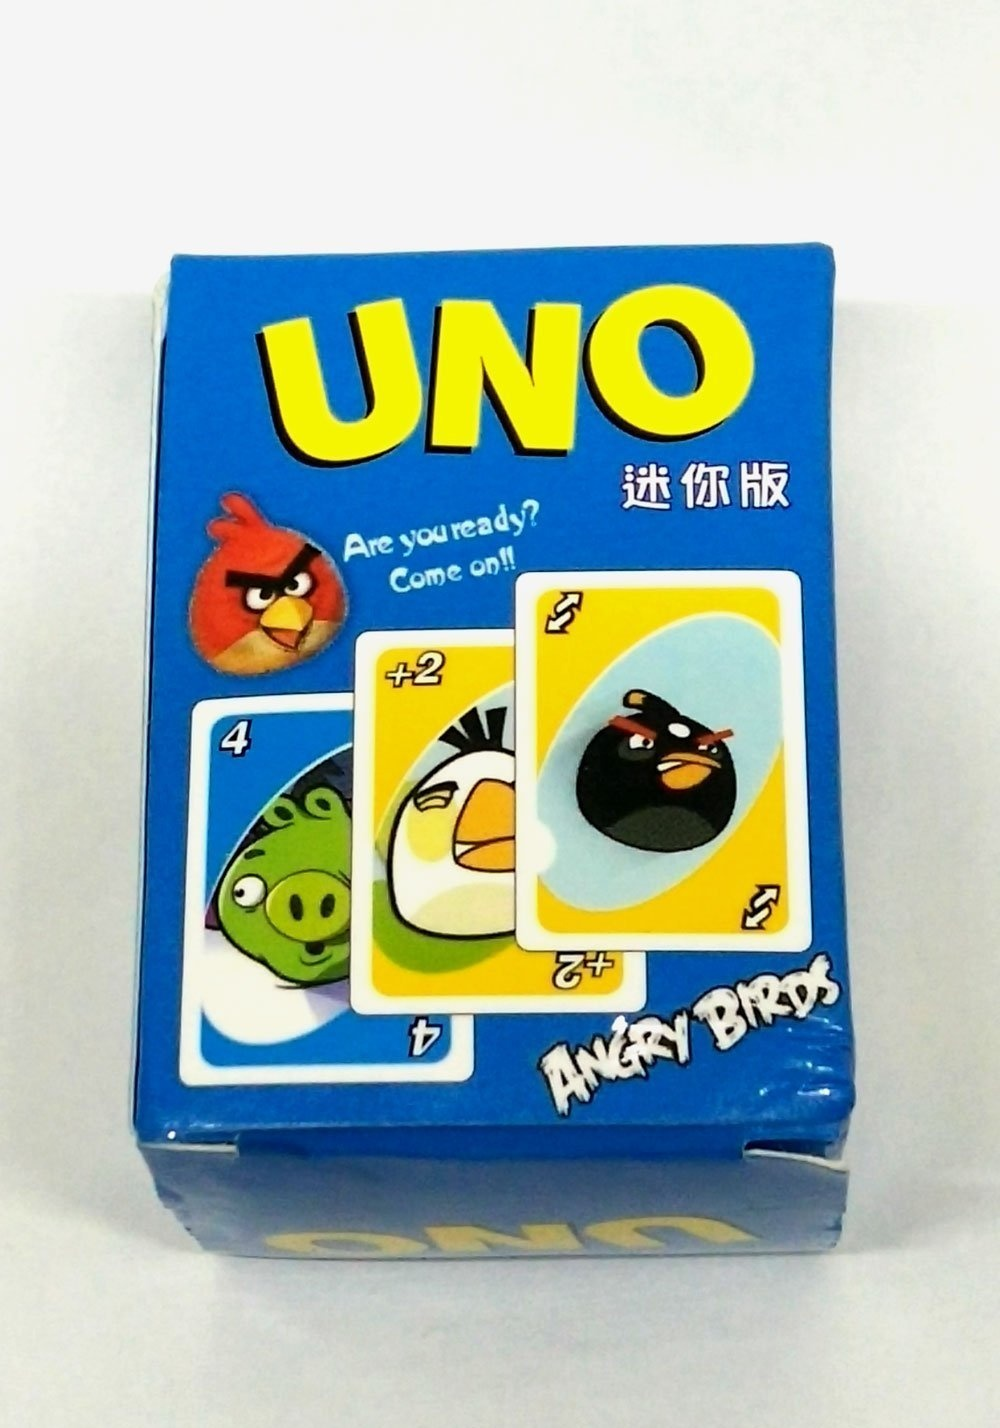 Mini Uno Card Game Toys: Buy Online from Fishpond.com.au